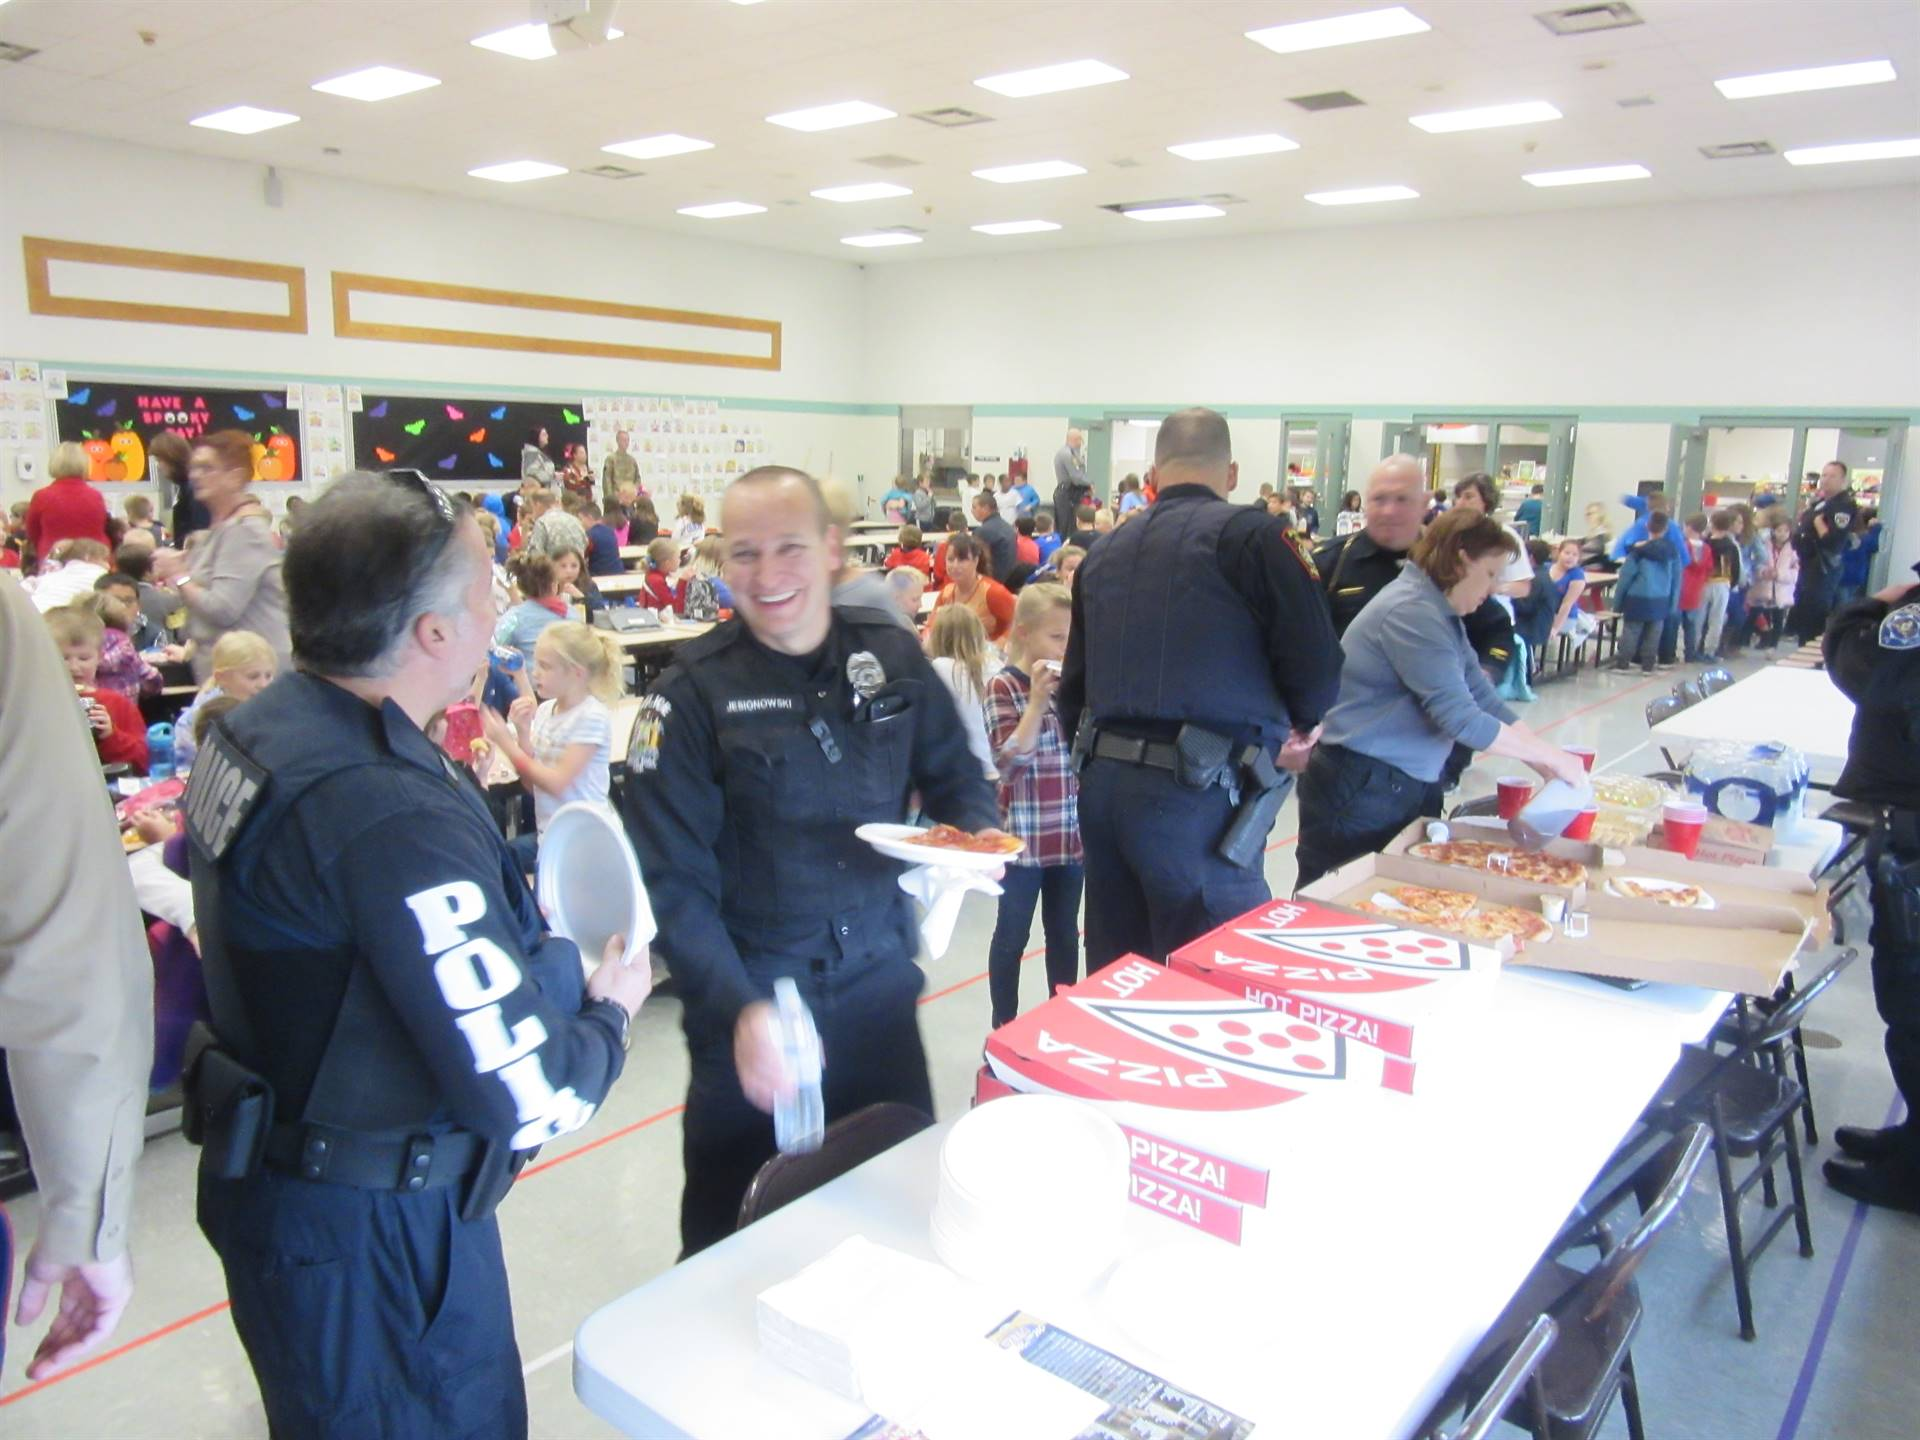 First Responders eating lunch with kids in cafeteria